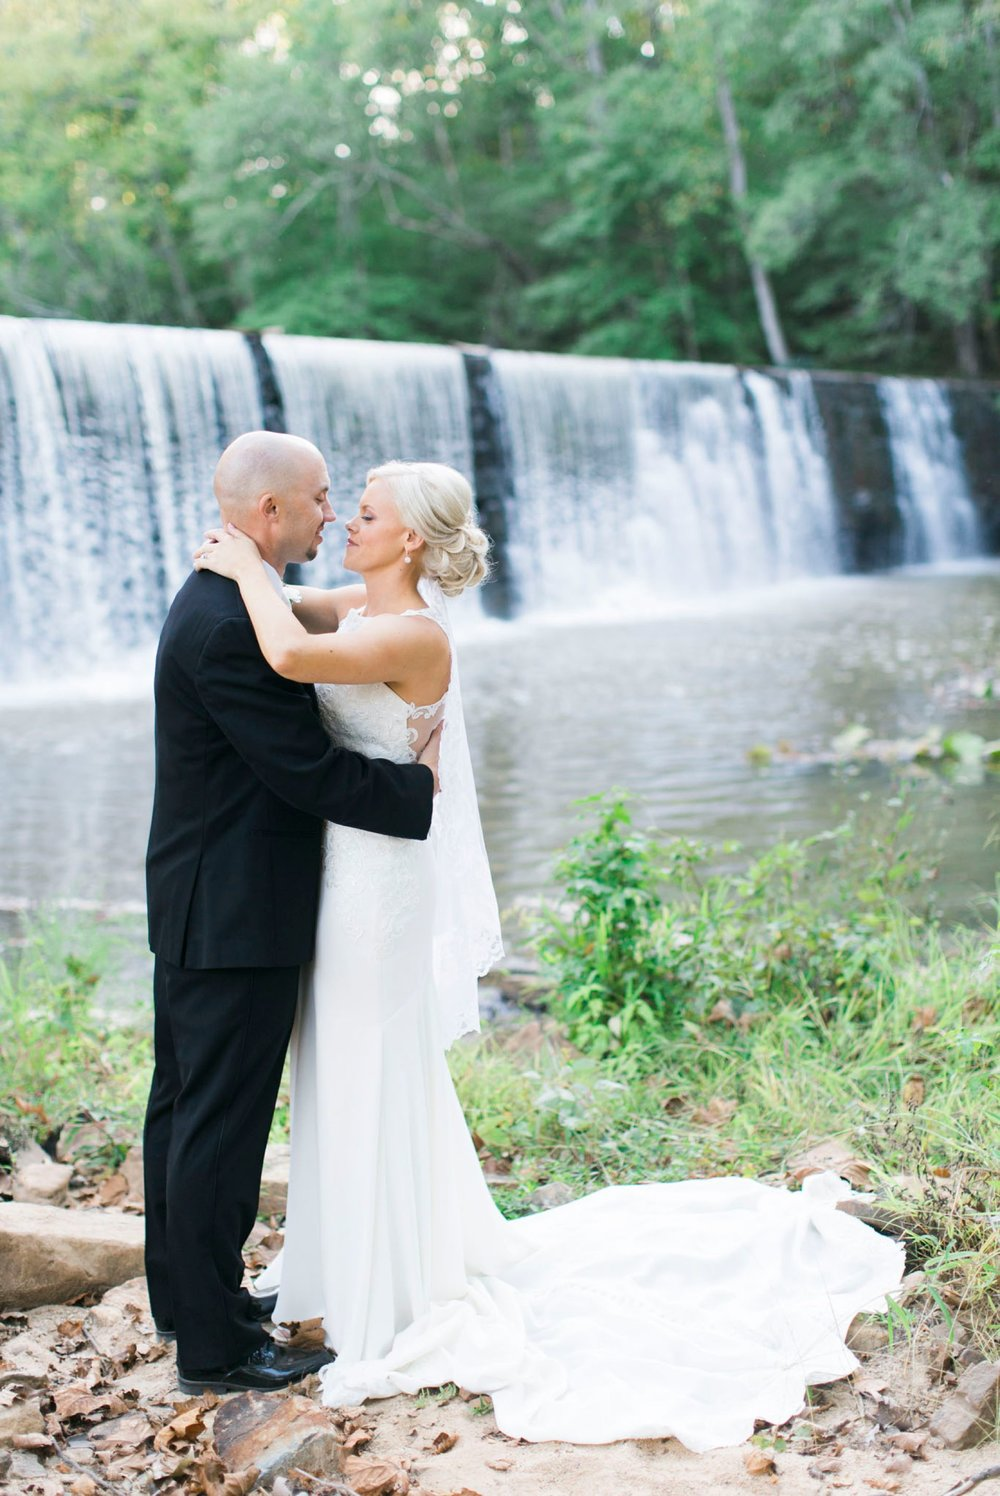 TheMillHouse_ChathamVA_WeddingPhotographer_VirginiaWeddingPhotographer_9.jpg 113.jpg